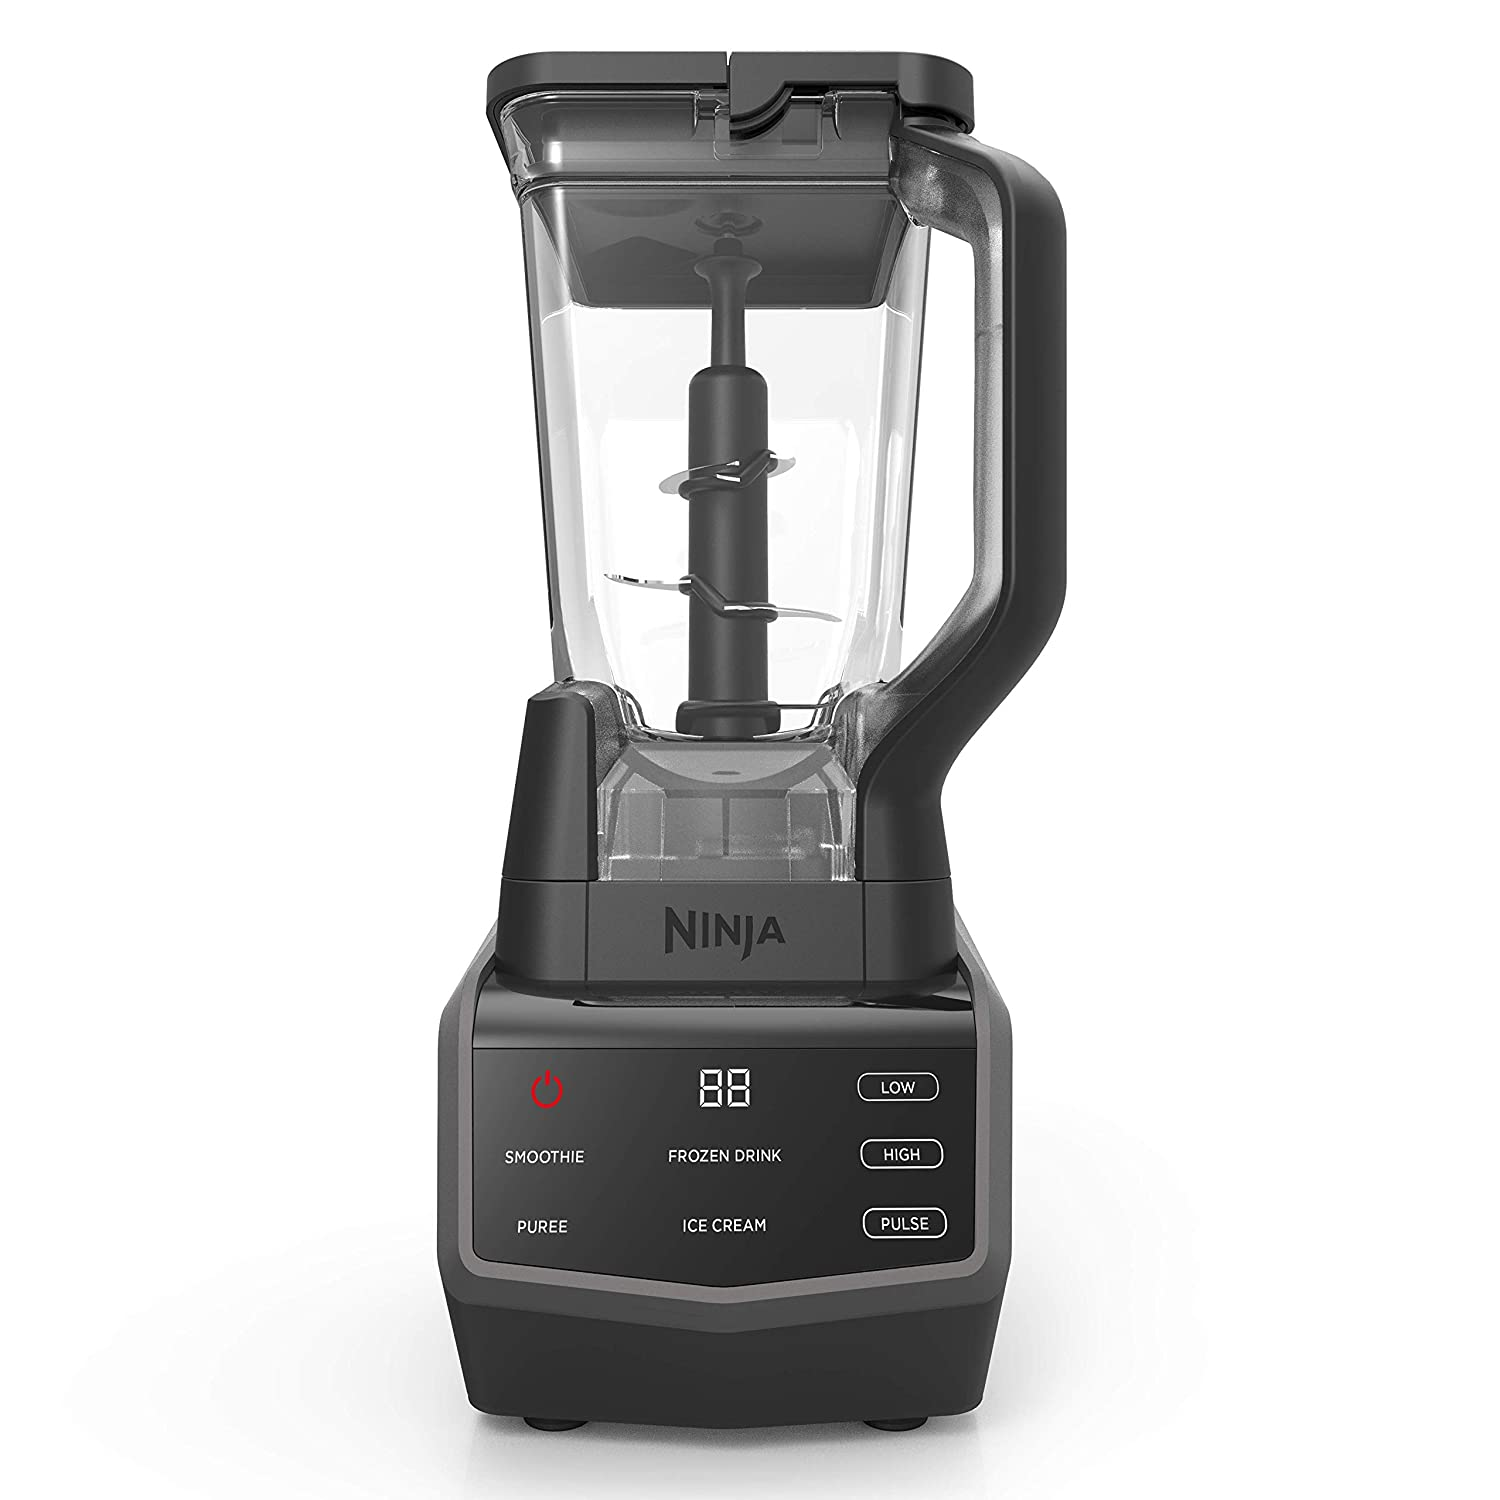 Ninja Smart Screen Blender with 1000-Watt Base, 4-Auto-iQ Programs, Touchscreen Display, Total Crushing Pitcher, (CT650), Black